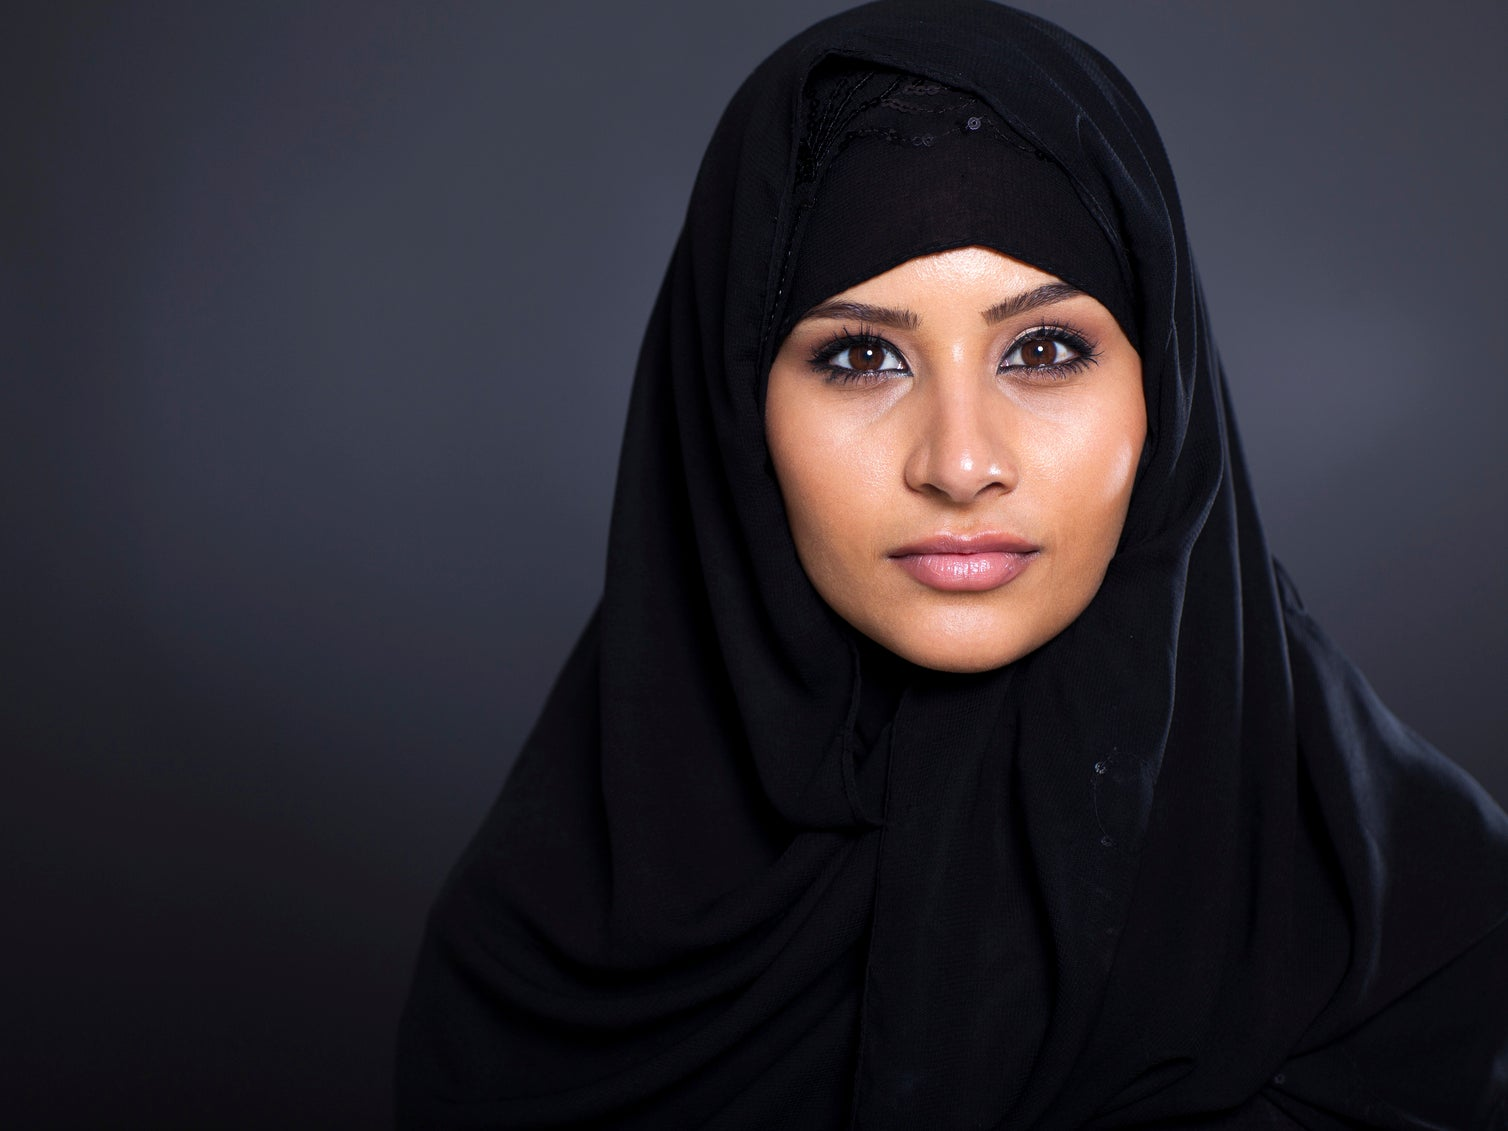 muslim single women in otero county Clinic apologizes for telling muslim doctor she can't can a military muslim woman wear the headscarf fire weather watch for otero county was issued at may.